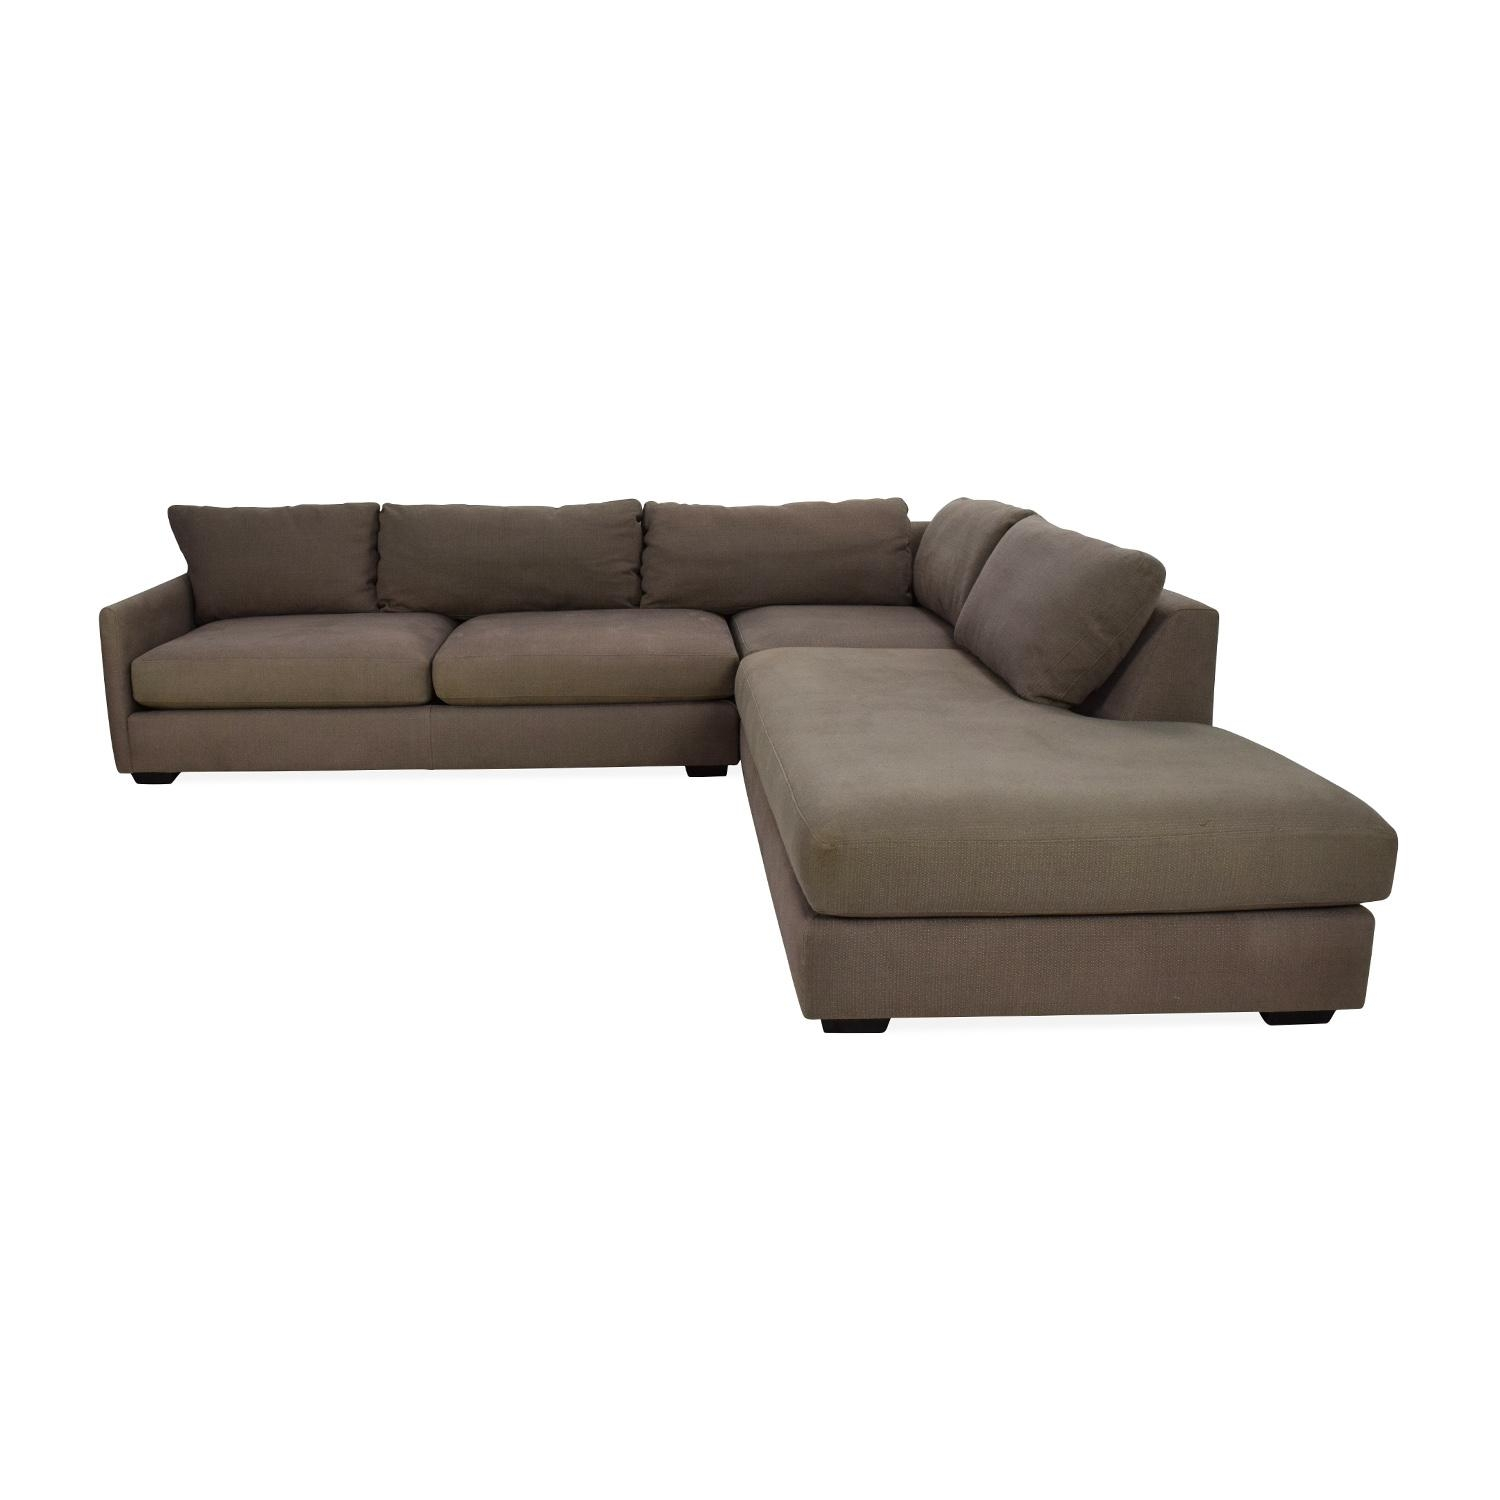 crate and barrel sleeper sofa mid century modern ebay 20 collection of sofas ideas